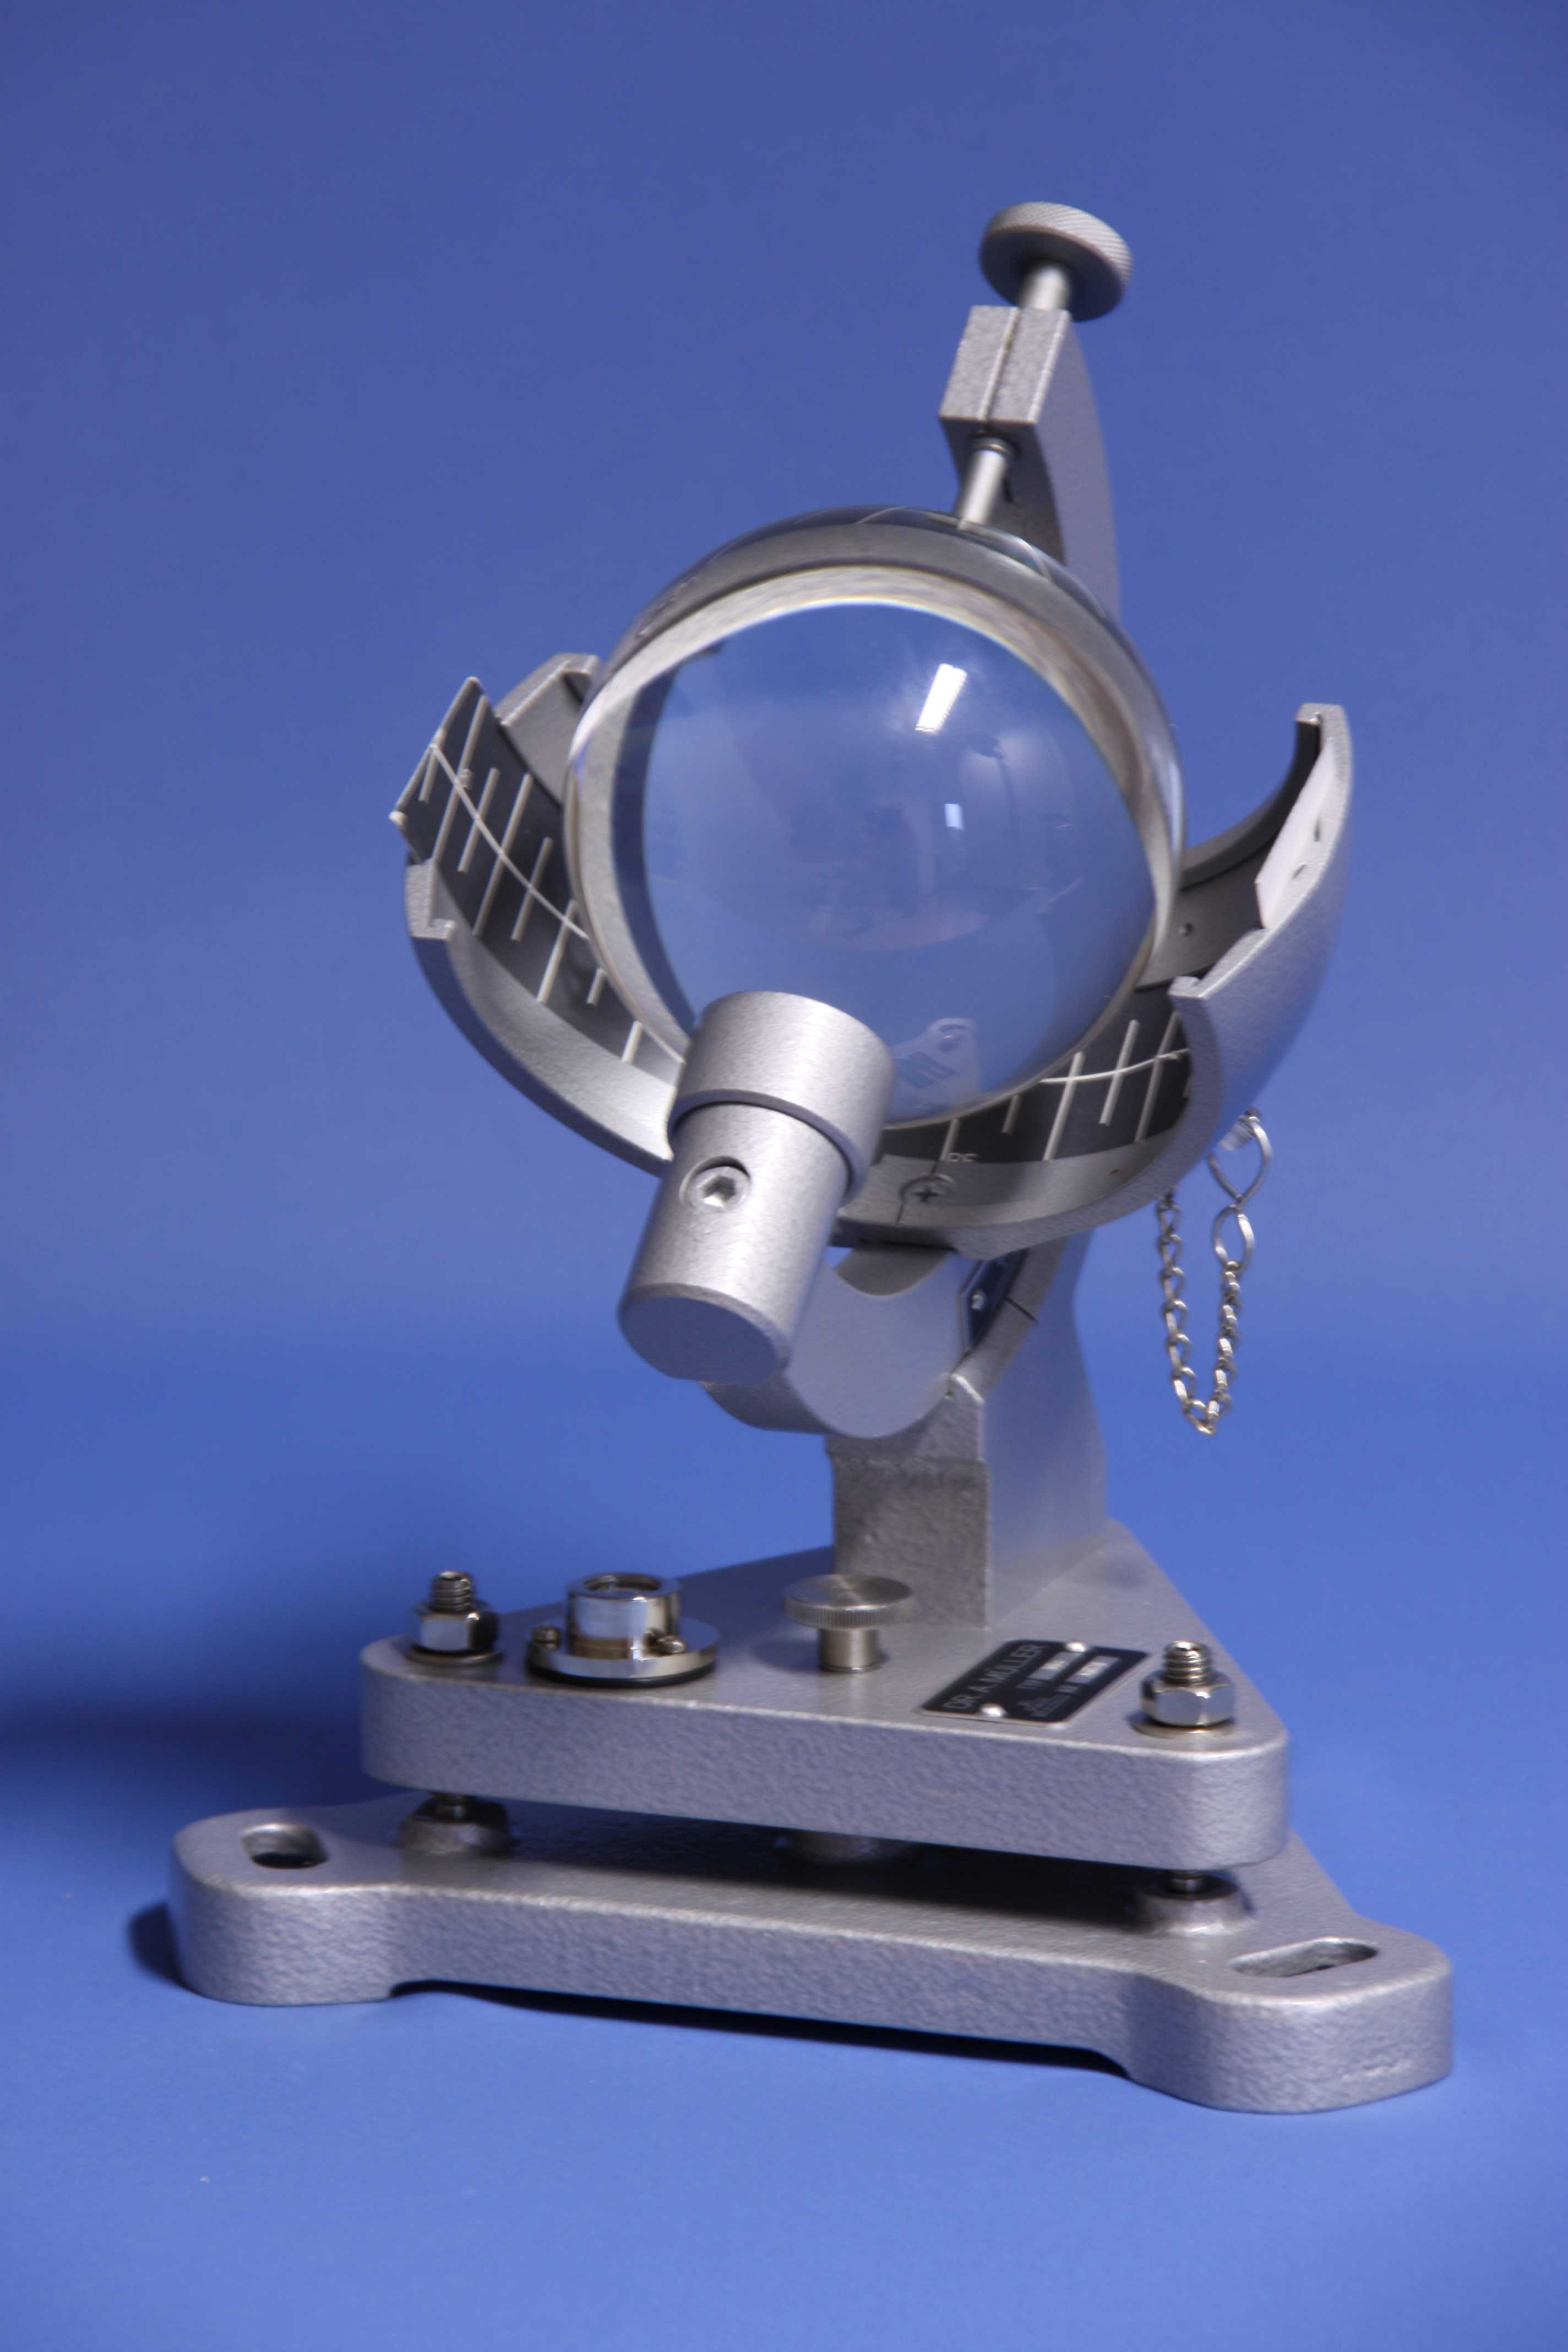 96C - Sunshine Recorder - Campbell-Stokes Type